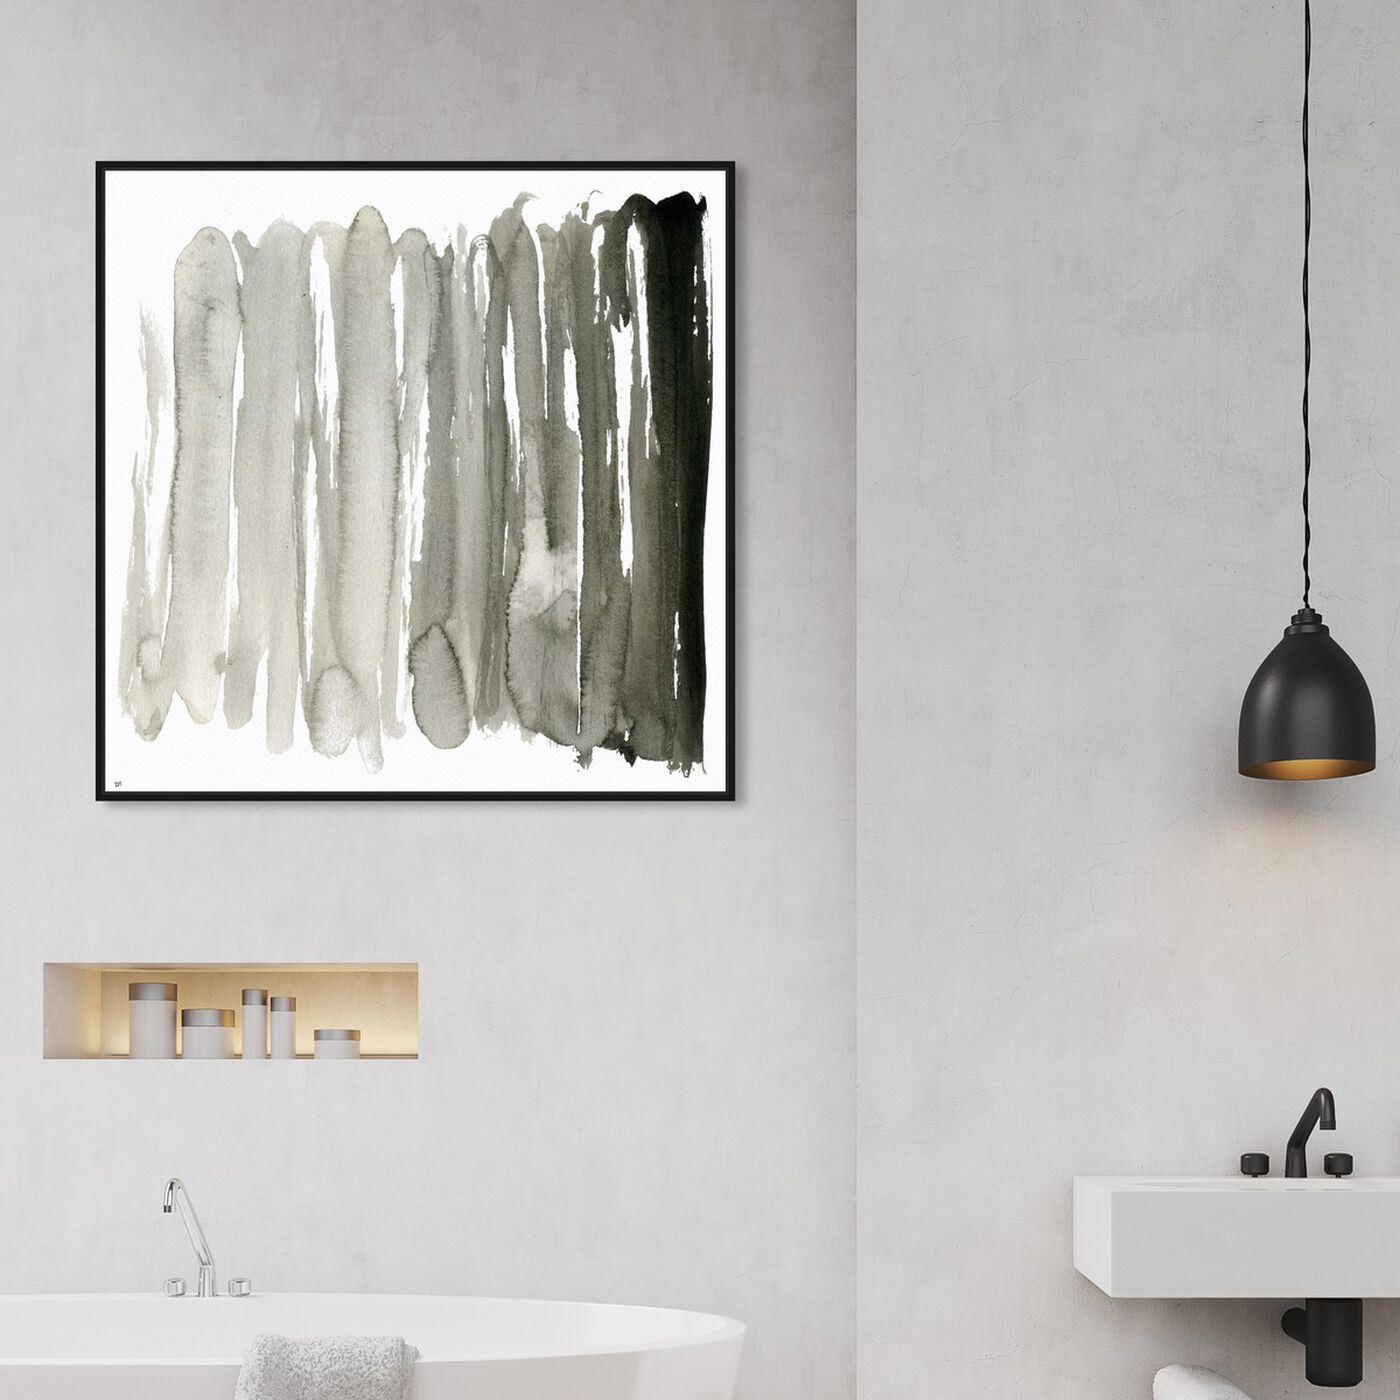 Hanging view of Ecleco Minimalista featuring abstract and watercolor art.